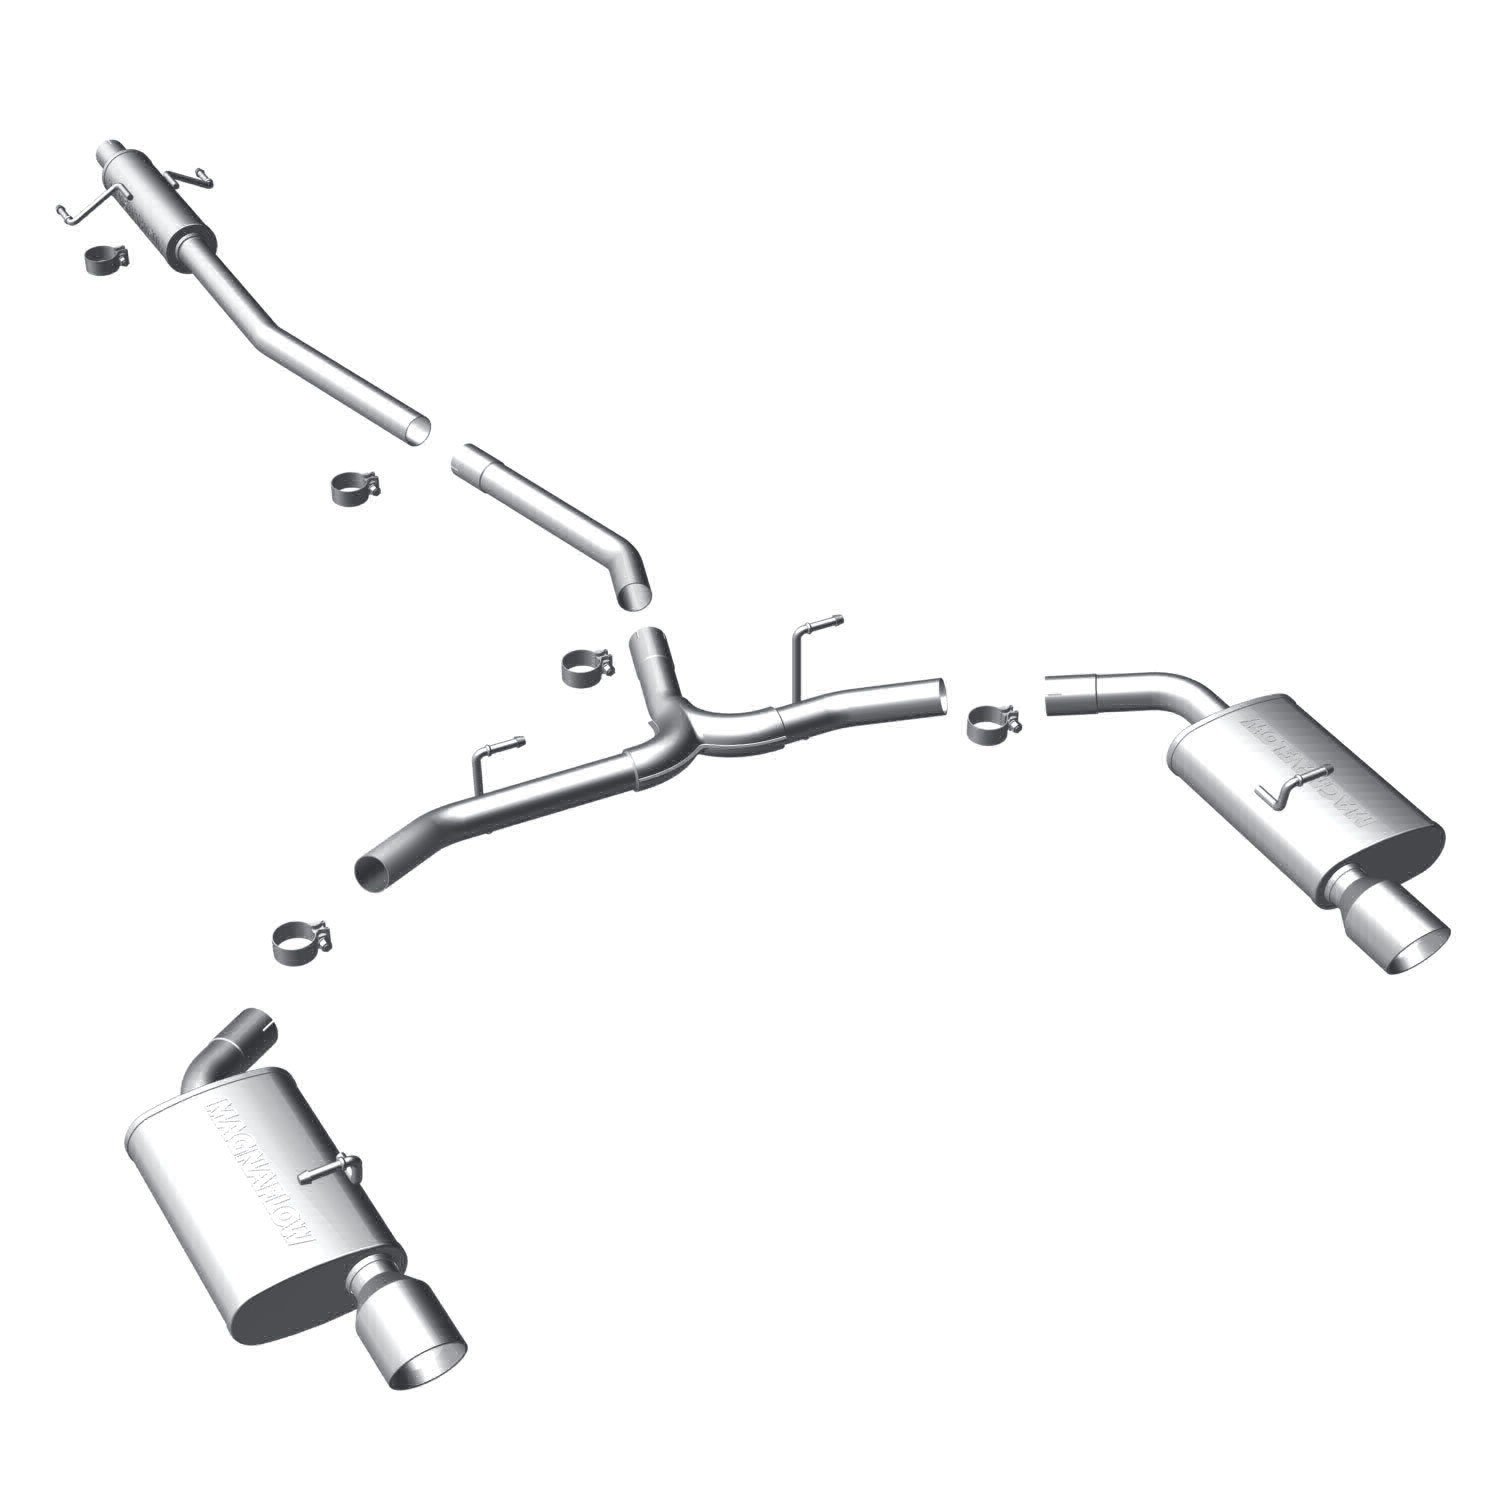 Magnaflow Cat Back Street Series Exhaust System